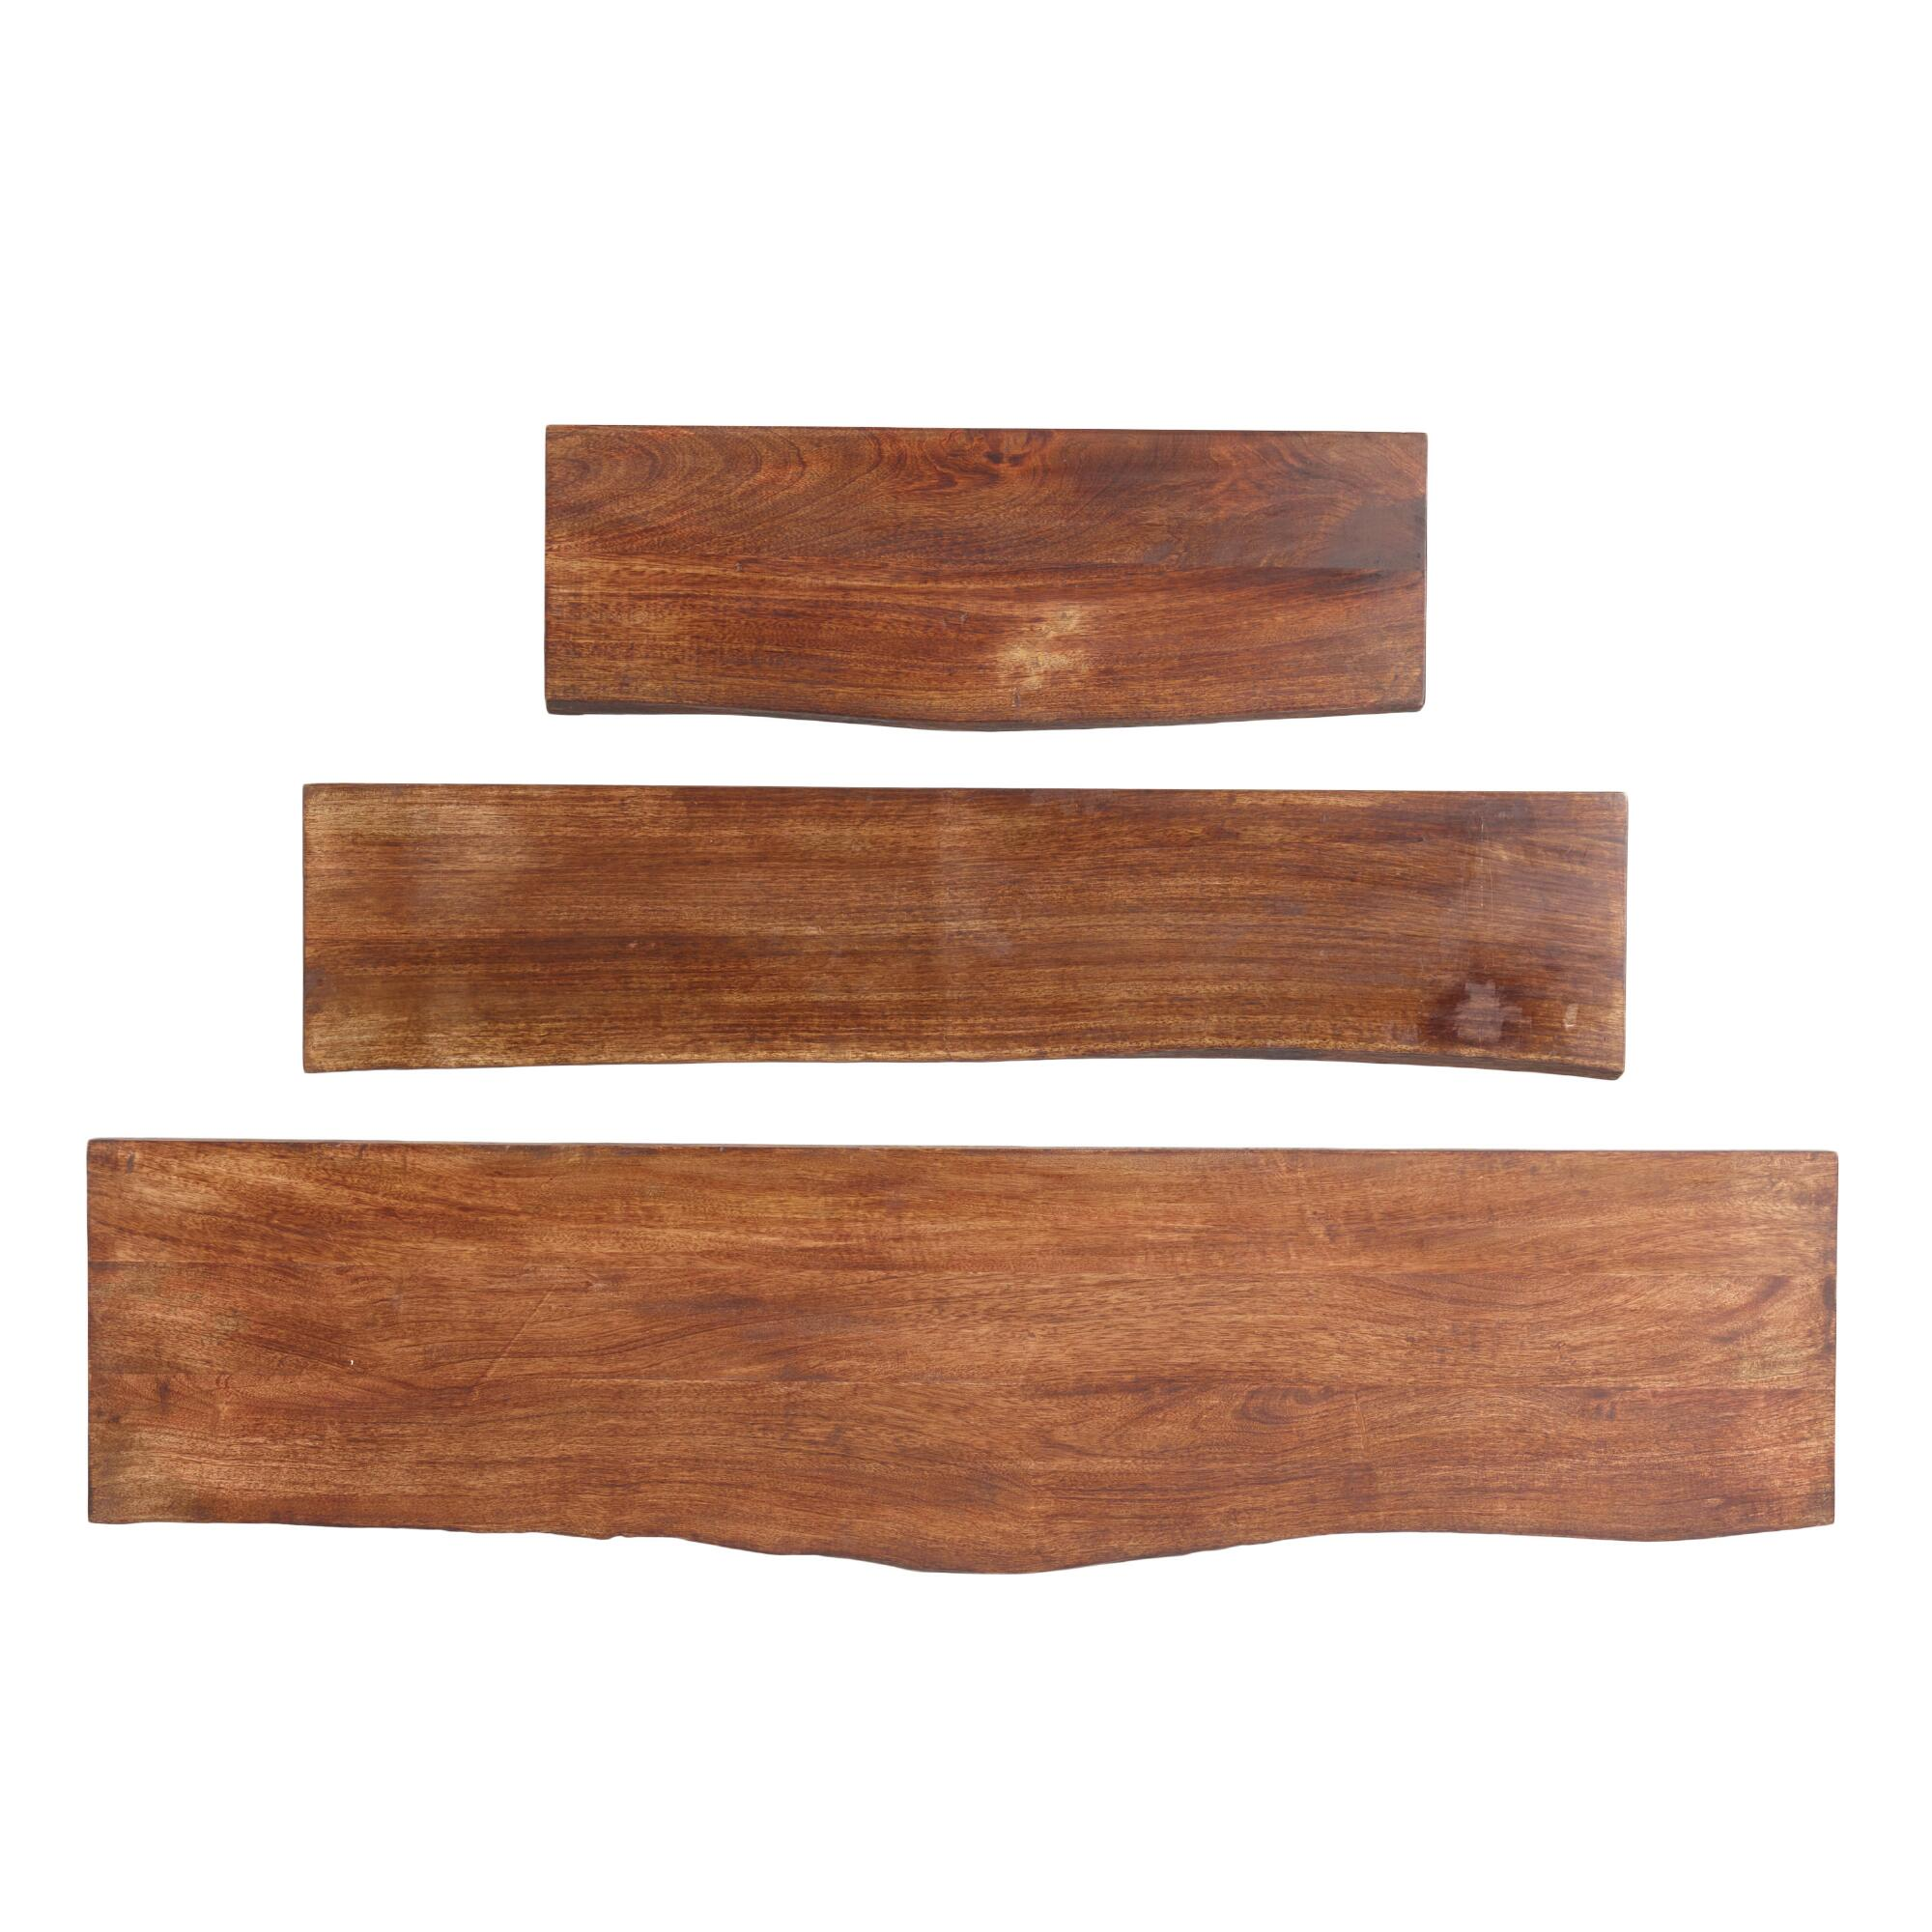 Organic Edge Wood Mix & Match Wall Shelves: Brown - 3Ft by World Market 3Ft